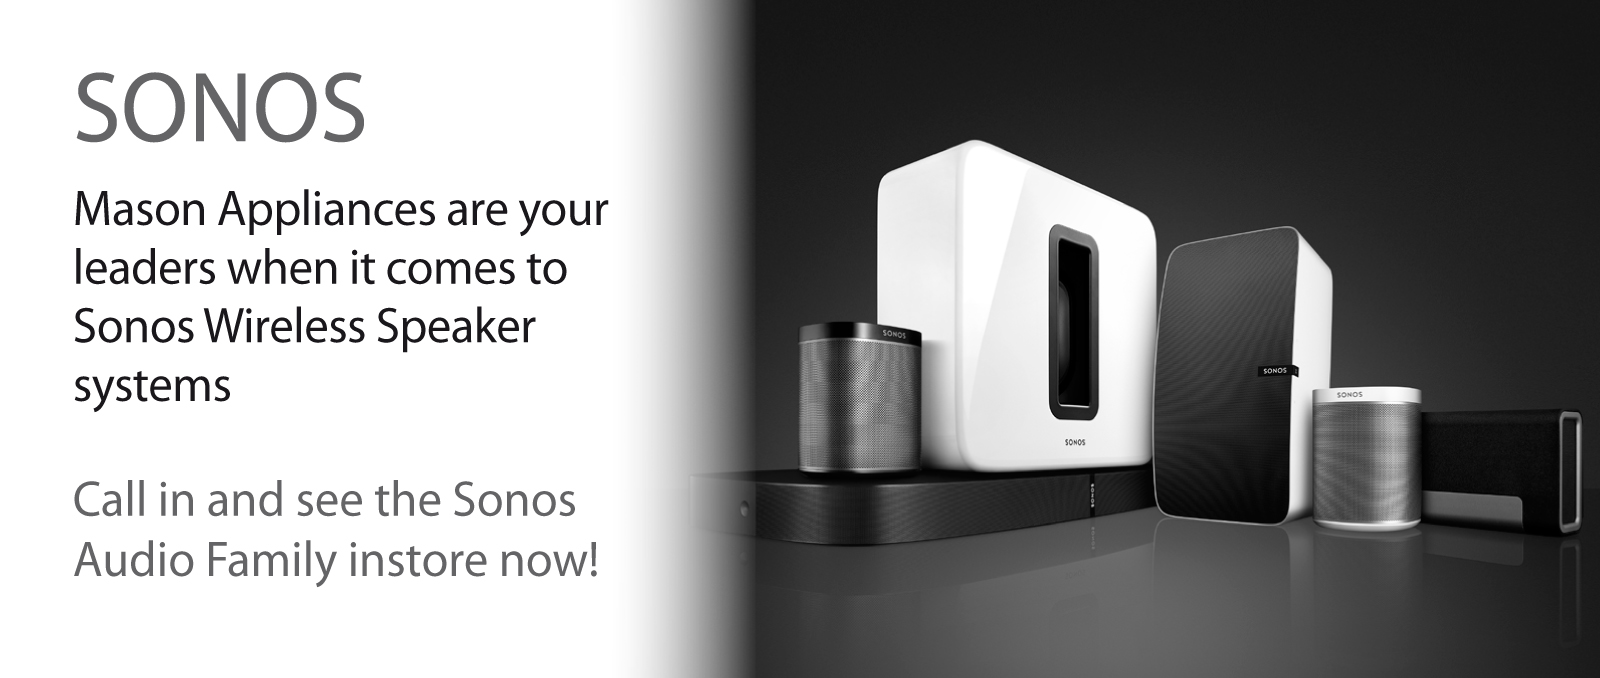 Website Sonos General Slider